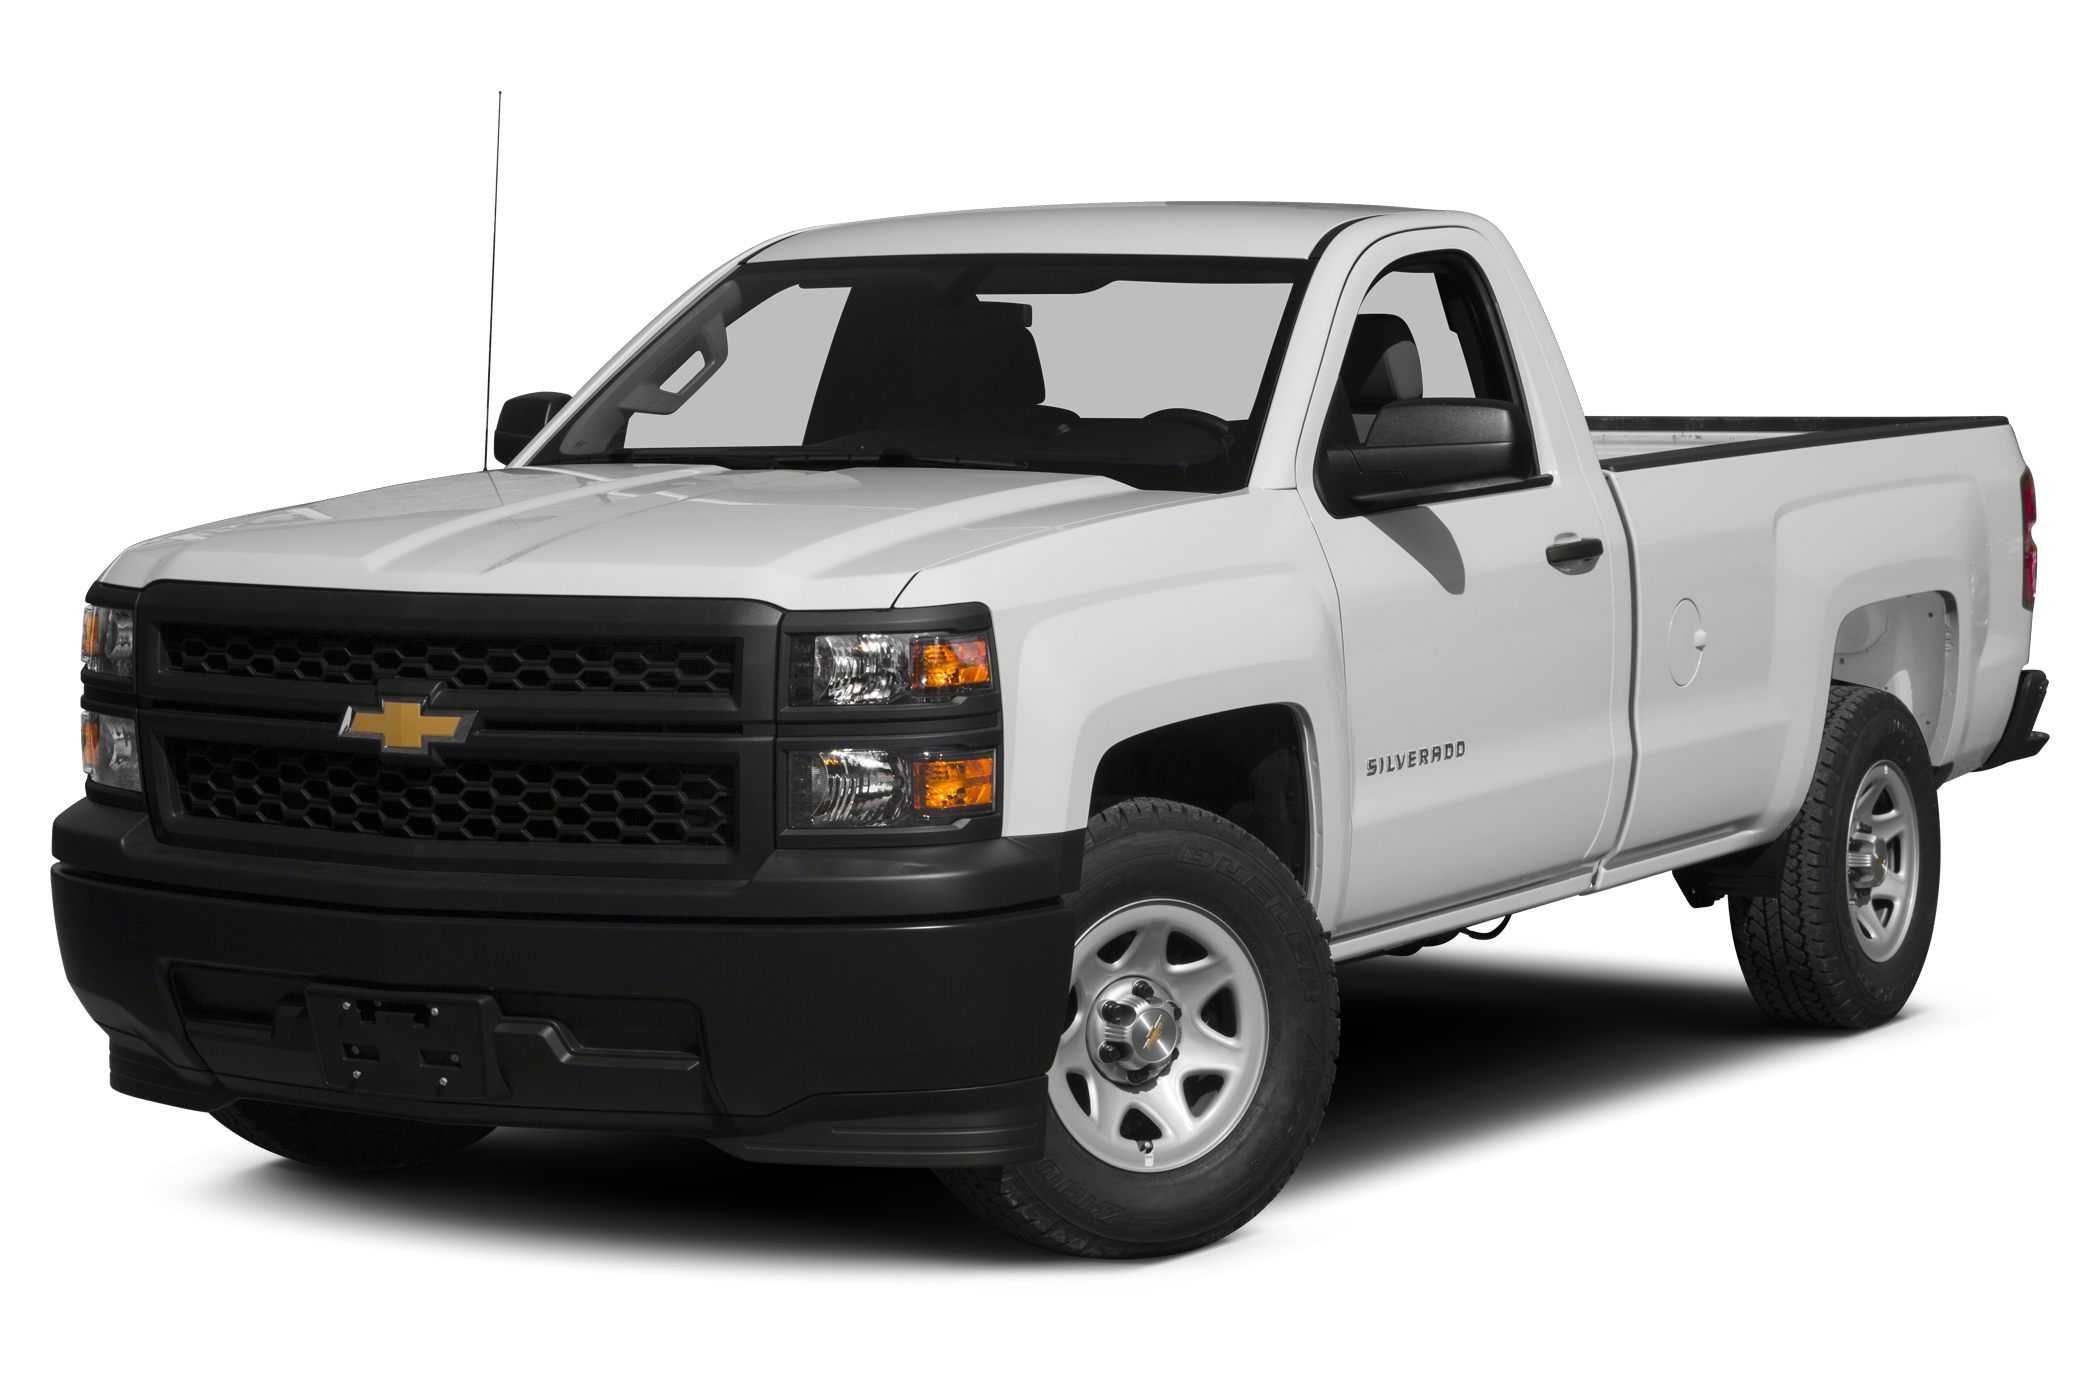 2015 Chevrolet Silverado 1500 1LT Crew Cab Pickup for sale in Fargo for $44,505 with 6 miles.